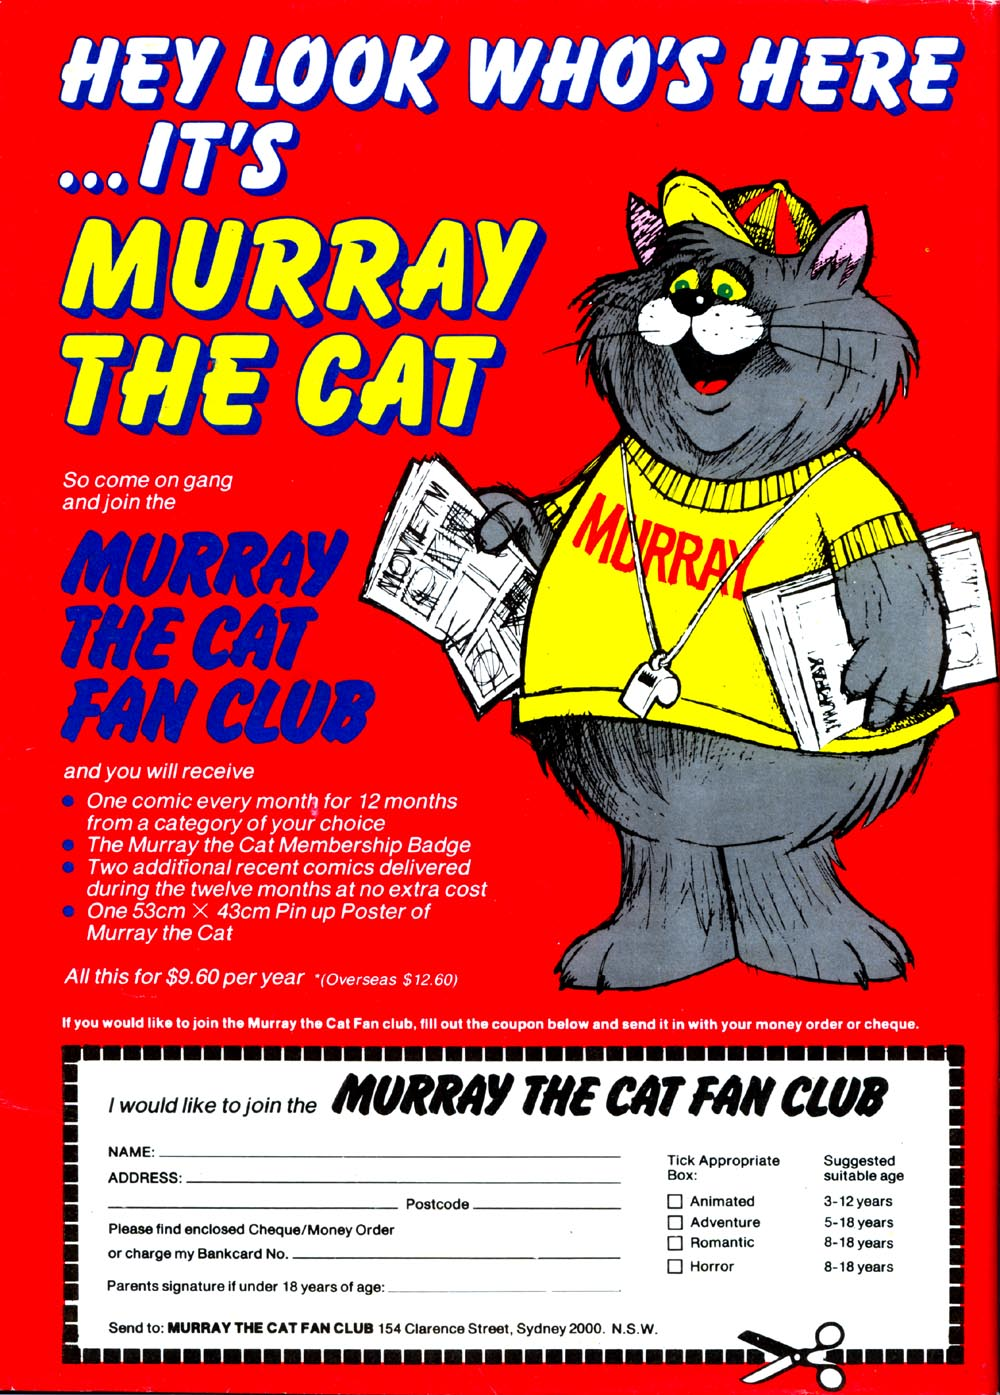 Murray the Cat Fan Club [red]